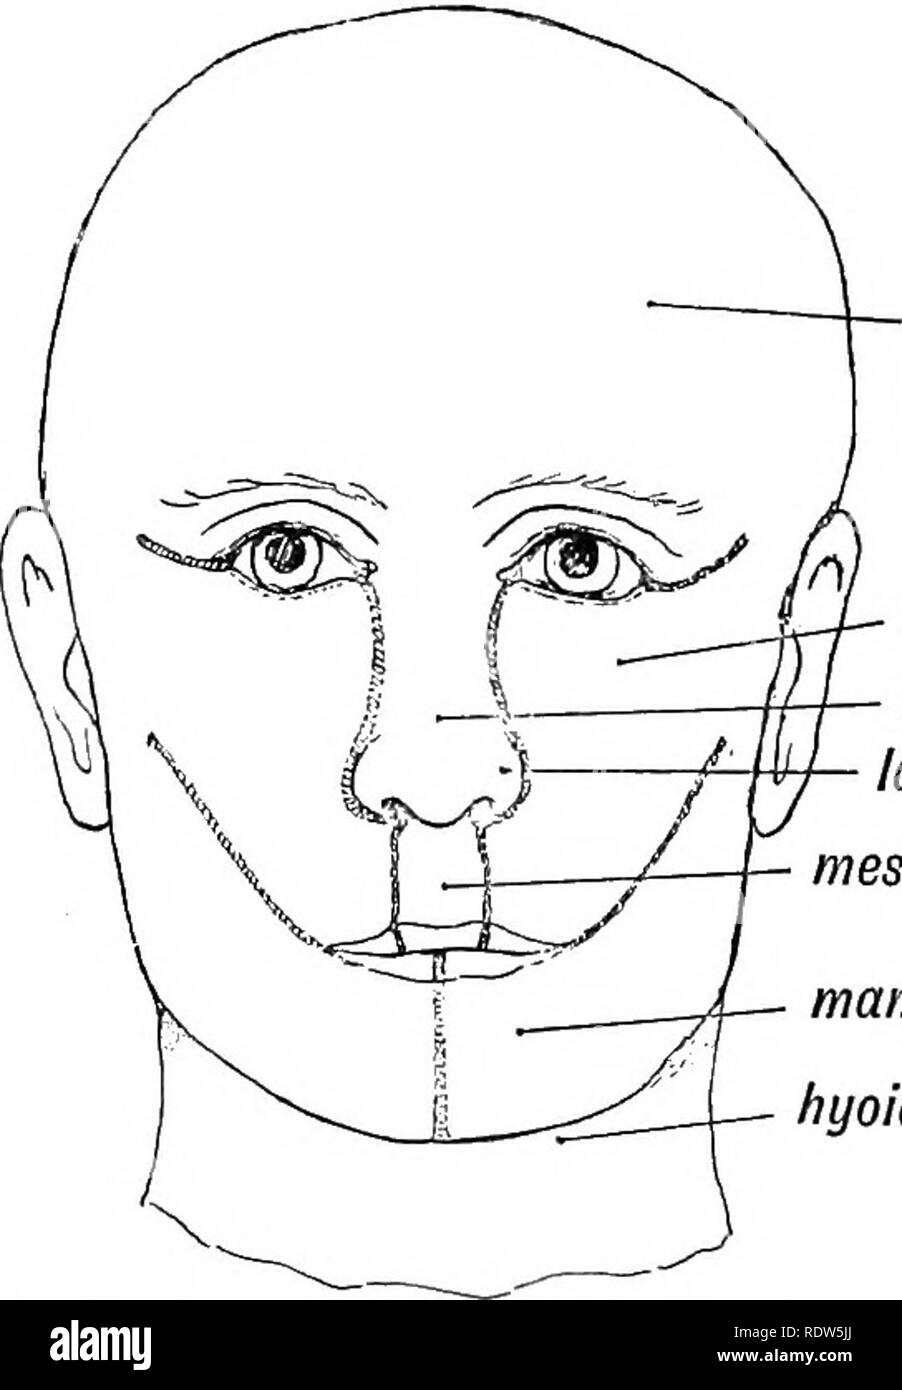 . Human embryology and morphology. Embryology, Human; Morphology. cerebrum maxillary process nasal field lat. nas. proc. mes. nas. proc. (proc. glob.) mandib. proc. hyoid arch Fig. 2.—Showing the parts of the face formed from the Nasal, Maxillary and Mandibular processes, ' processes, the labial part of the middle nasal process being undeveloped. Macrostoma is due to a partial failure of the. Please note that these images are extracted from scanned page images that may have been digitally enhanced for readability - coloration and appearance of these illustrations may not perfectly resemble the - Stock Image